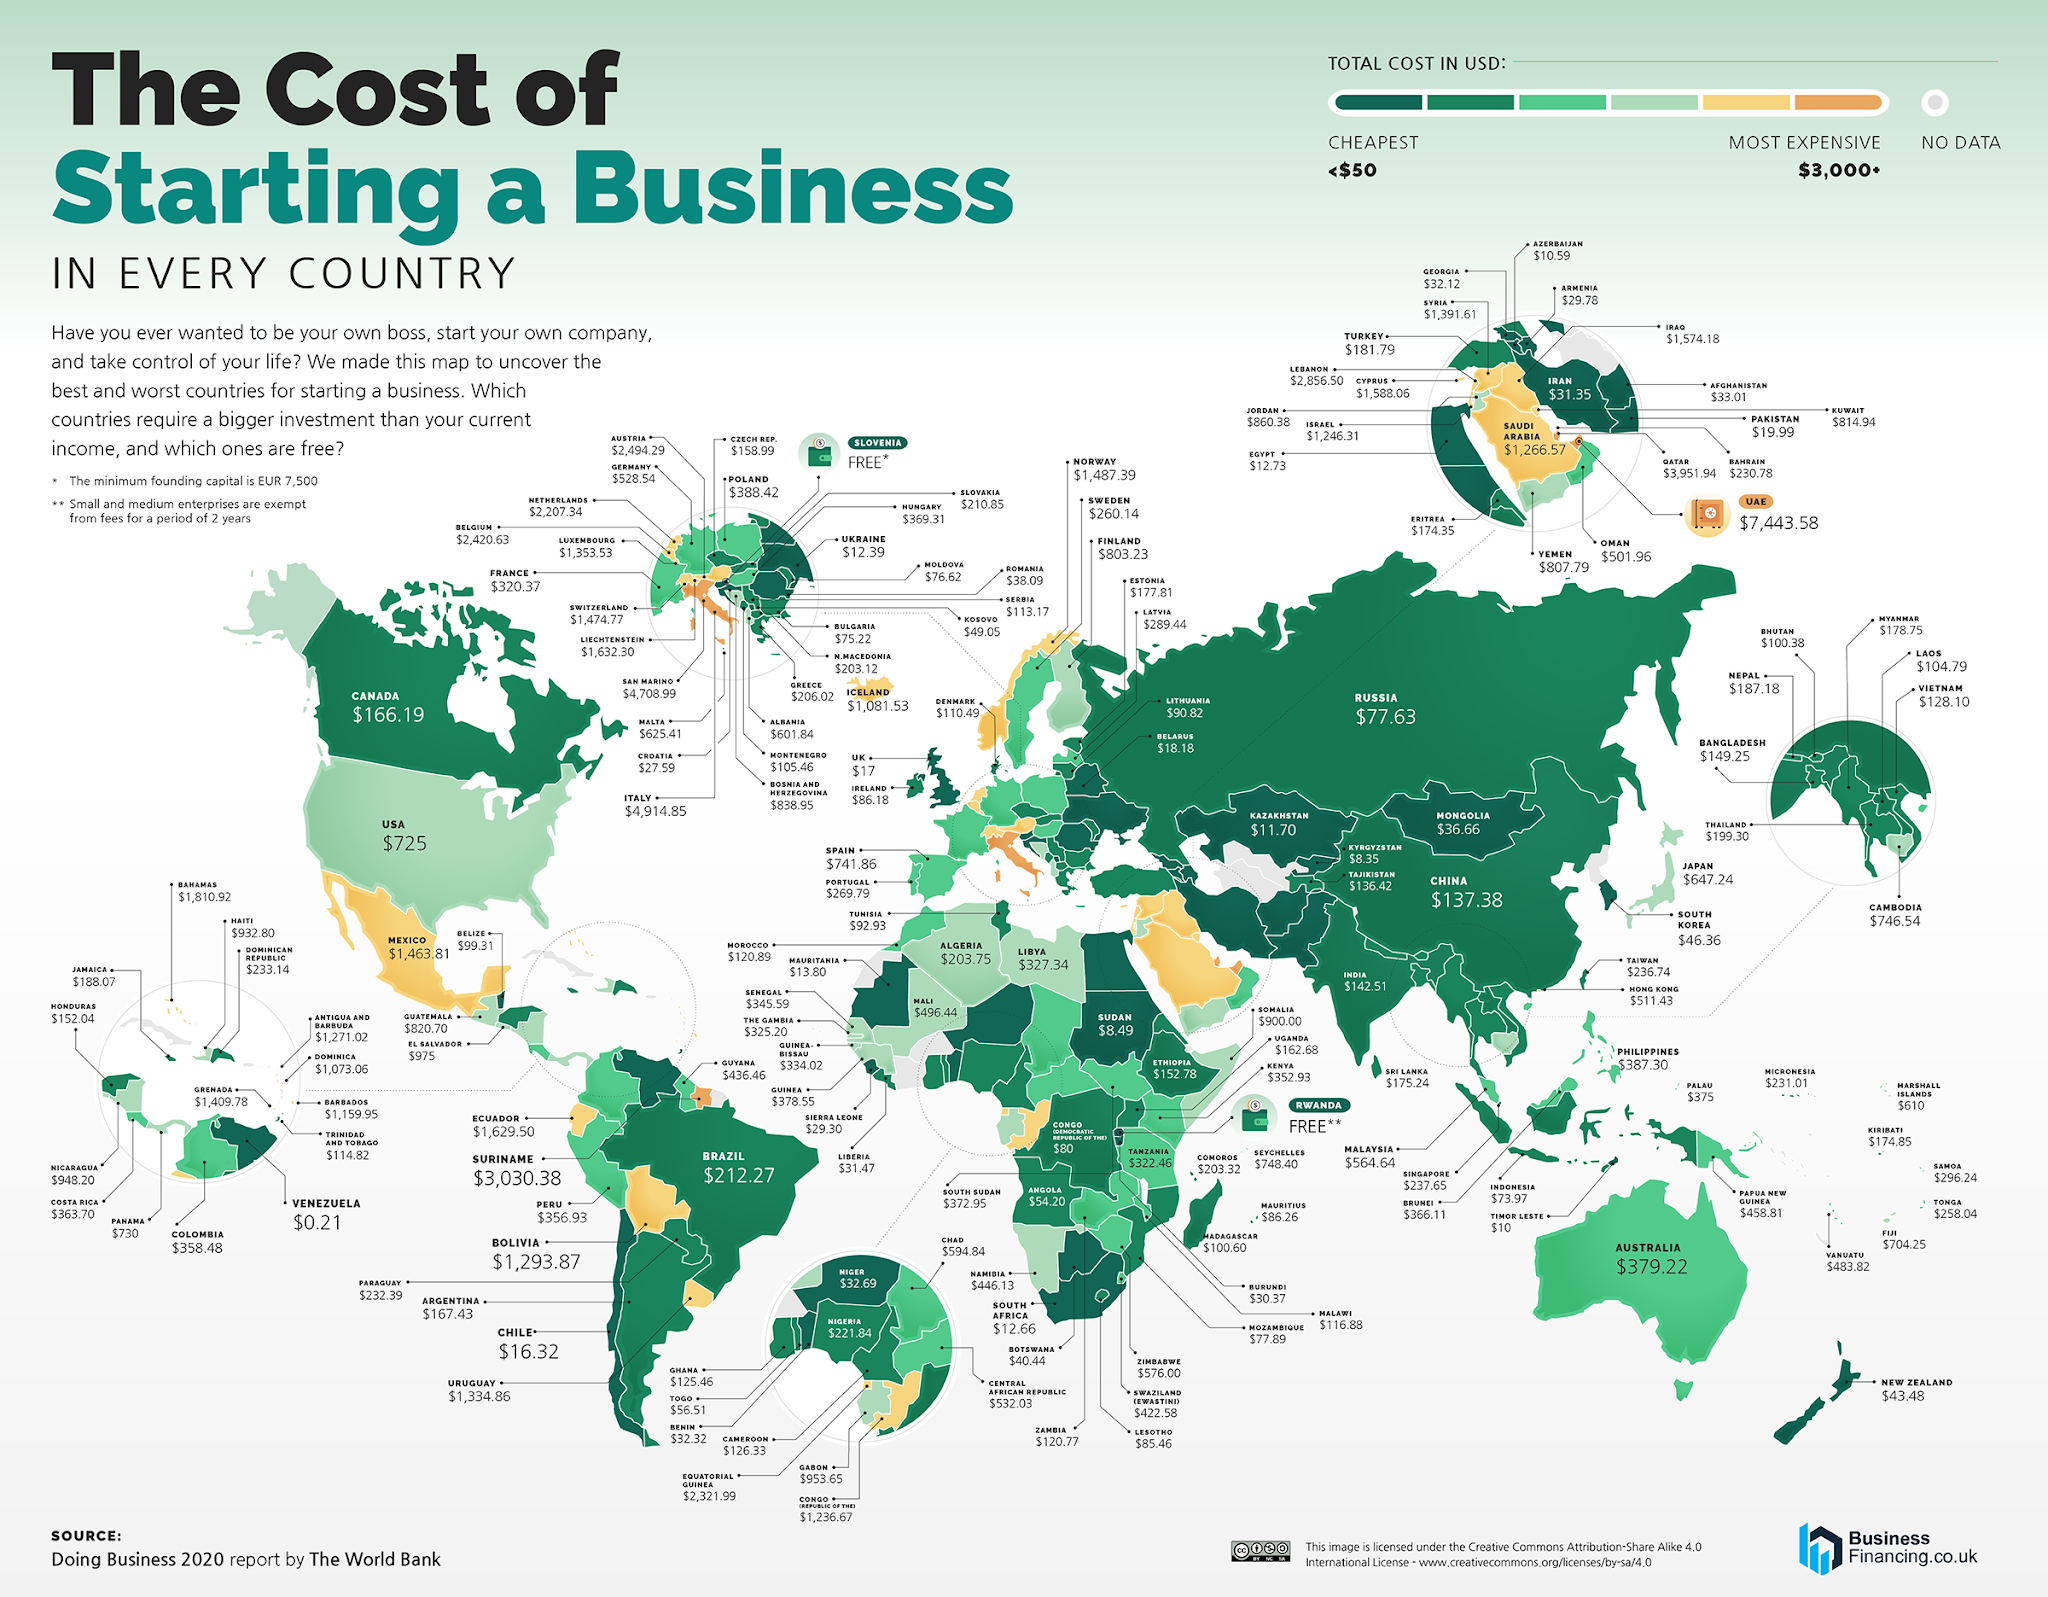 How much does it cost to set up a business in every country?